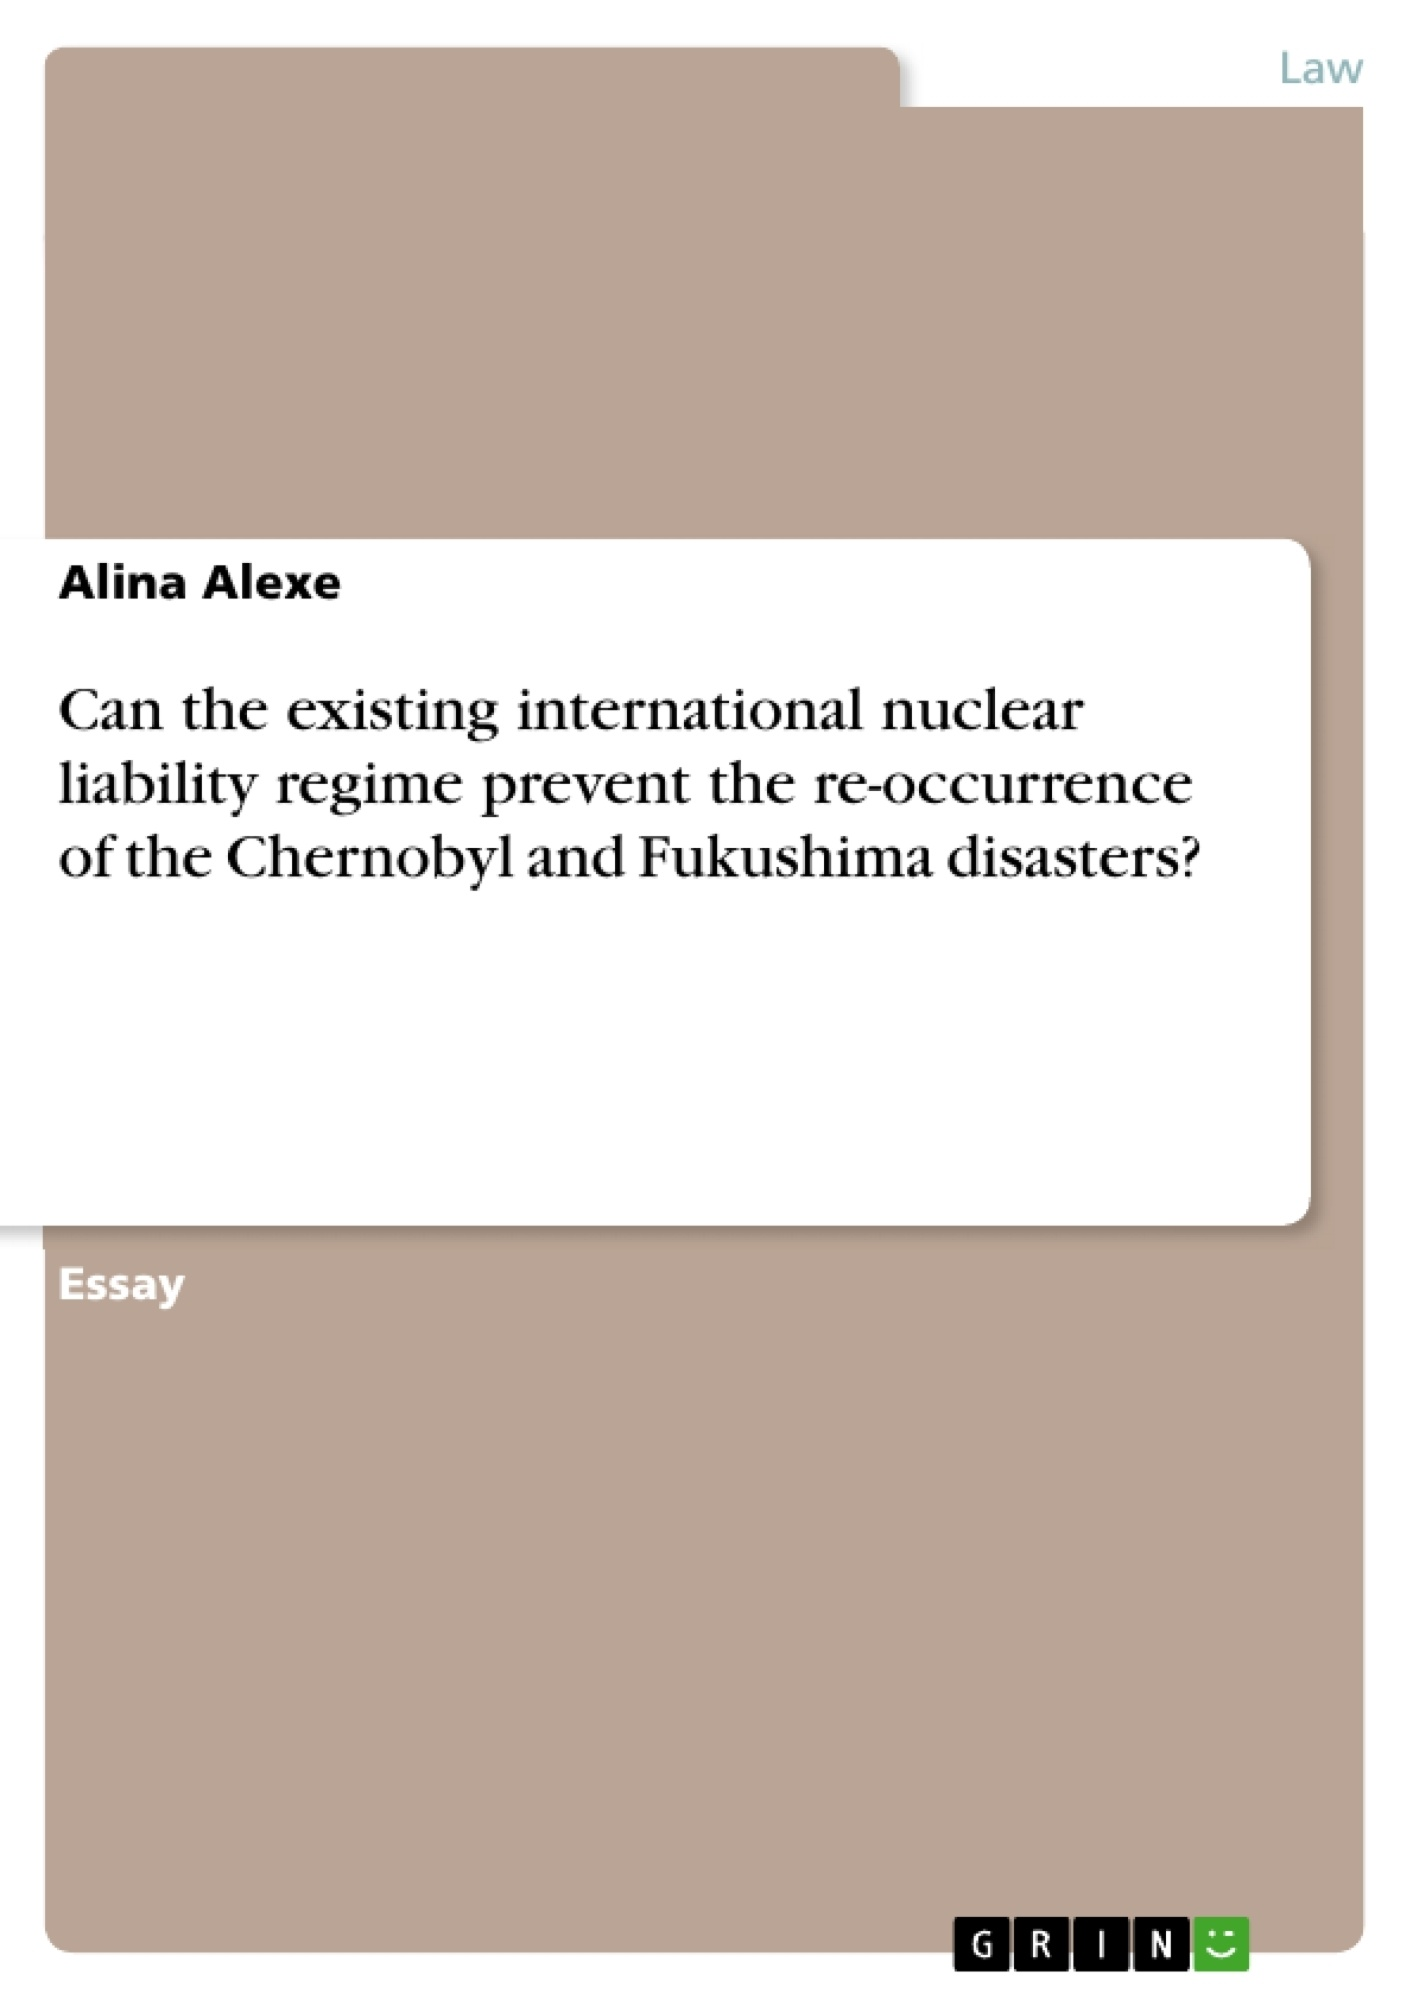 Title: Can the existing international nuclear liability regime prevent the re-occurrence of the Chernobyl and Fukushima disasters?